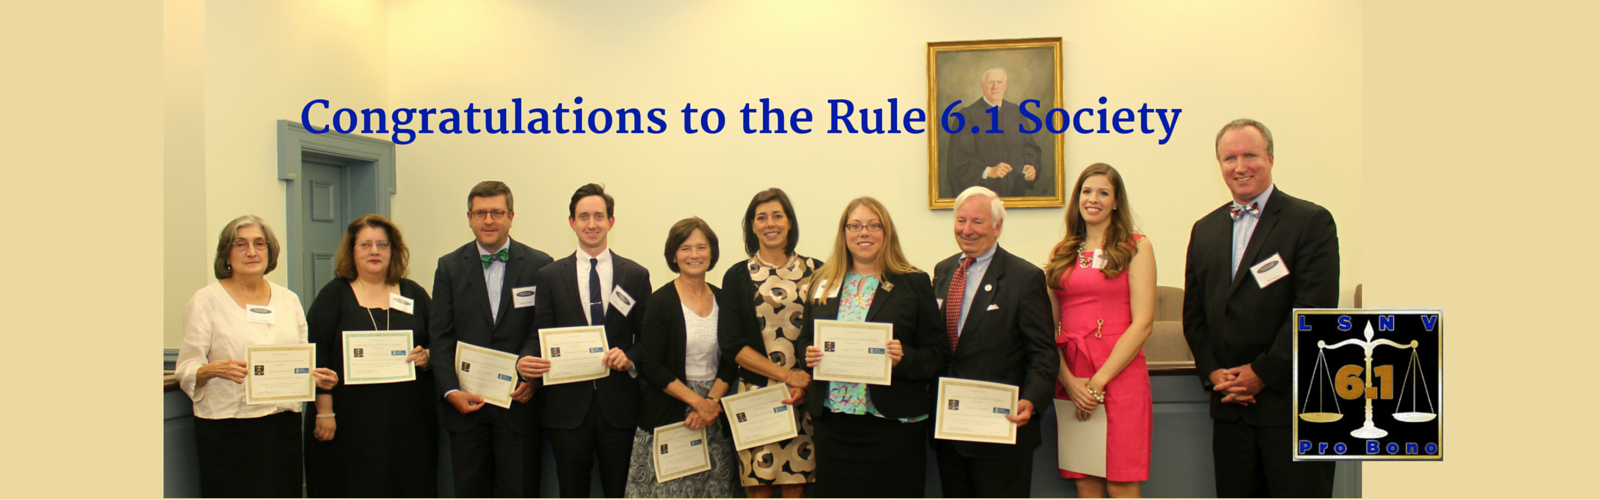 Members of the Rule 6.1 Society